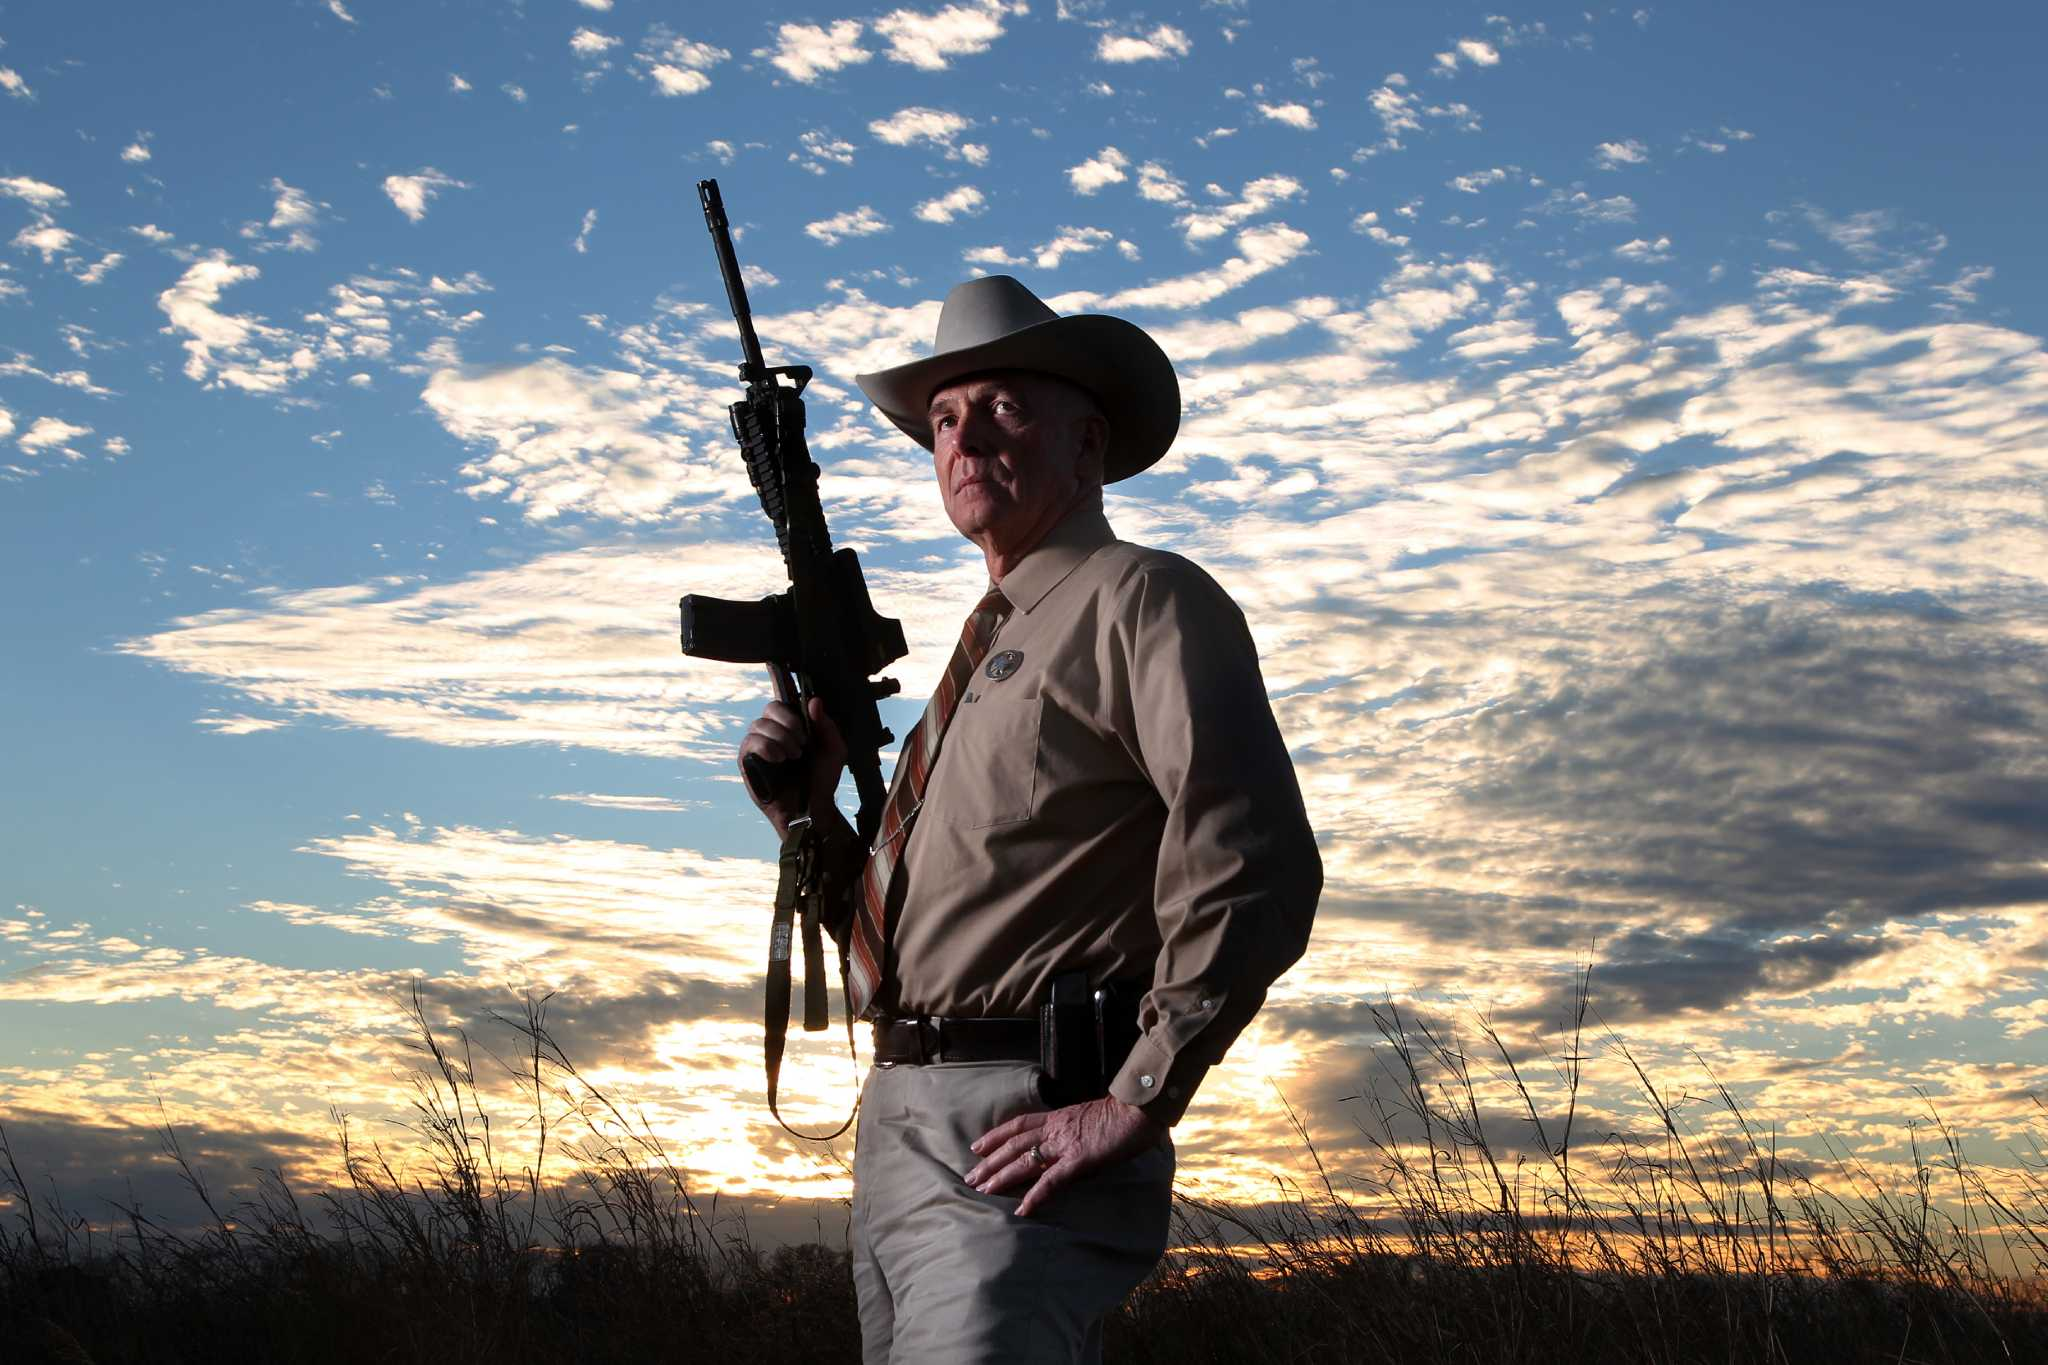 A Texas Ranger holding an assault rifle